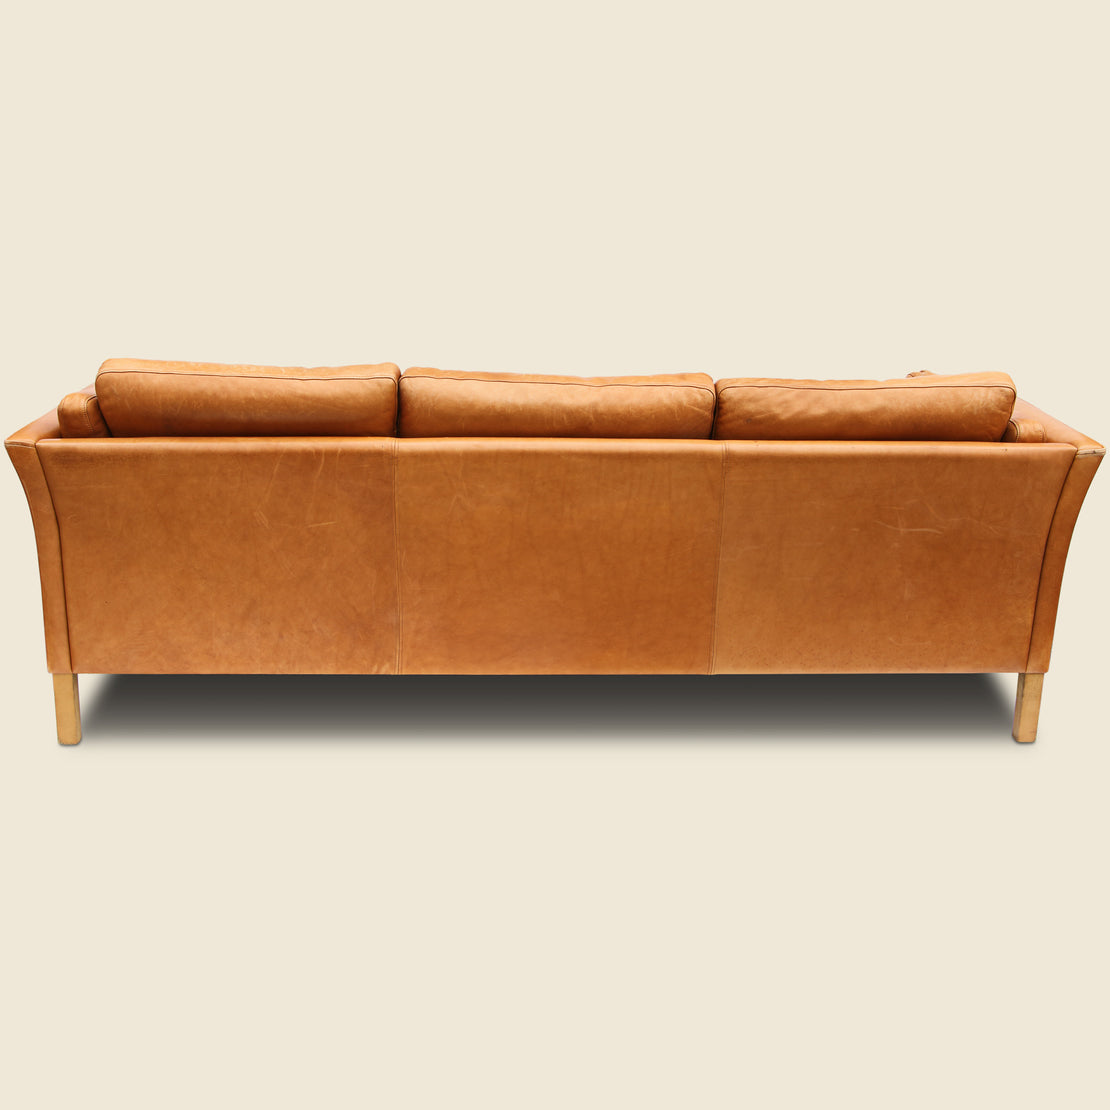 Vintage Danish Sofa - Vintage - STAG Provisions - One & Done - Furniture